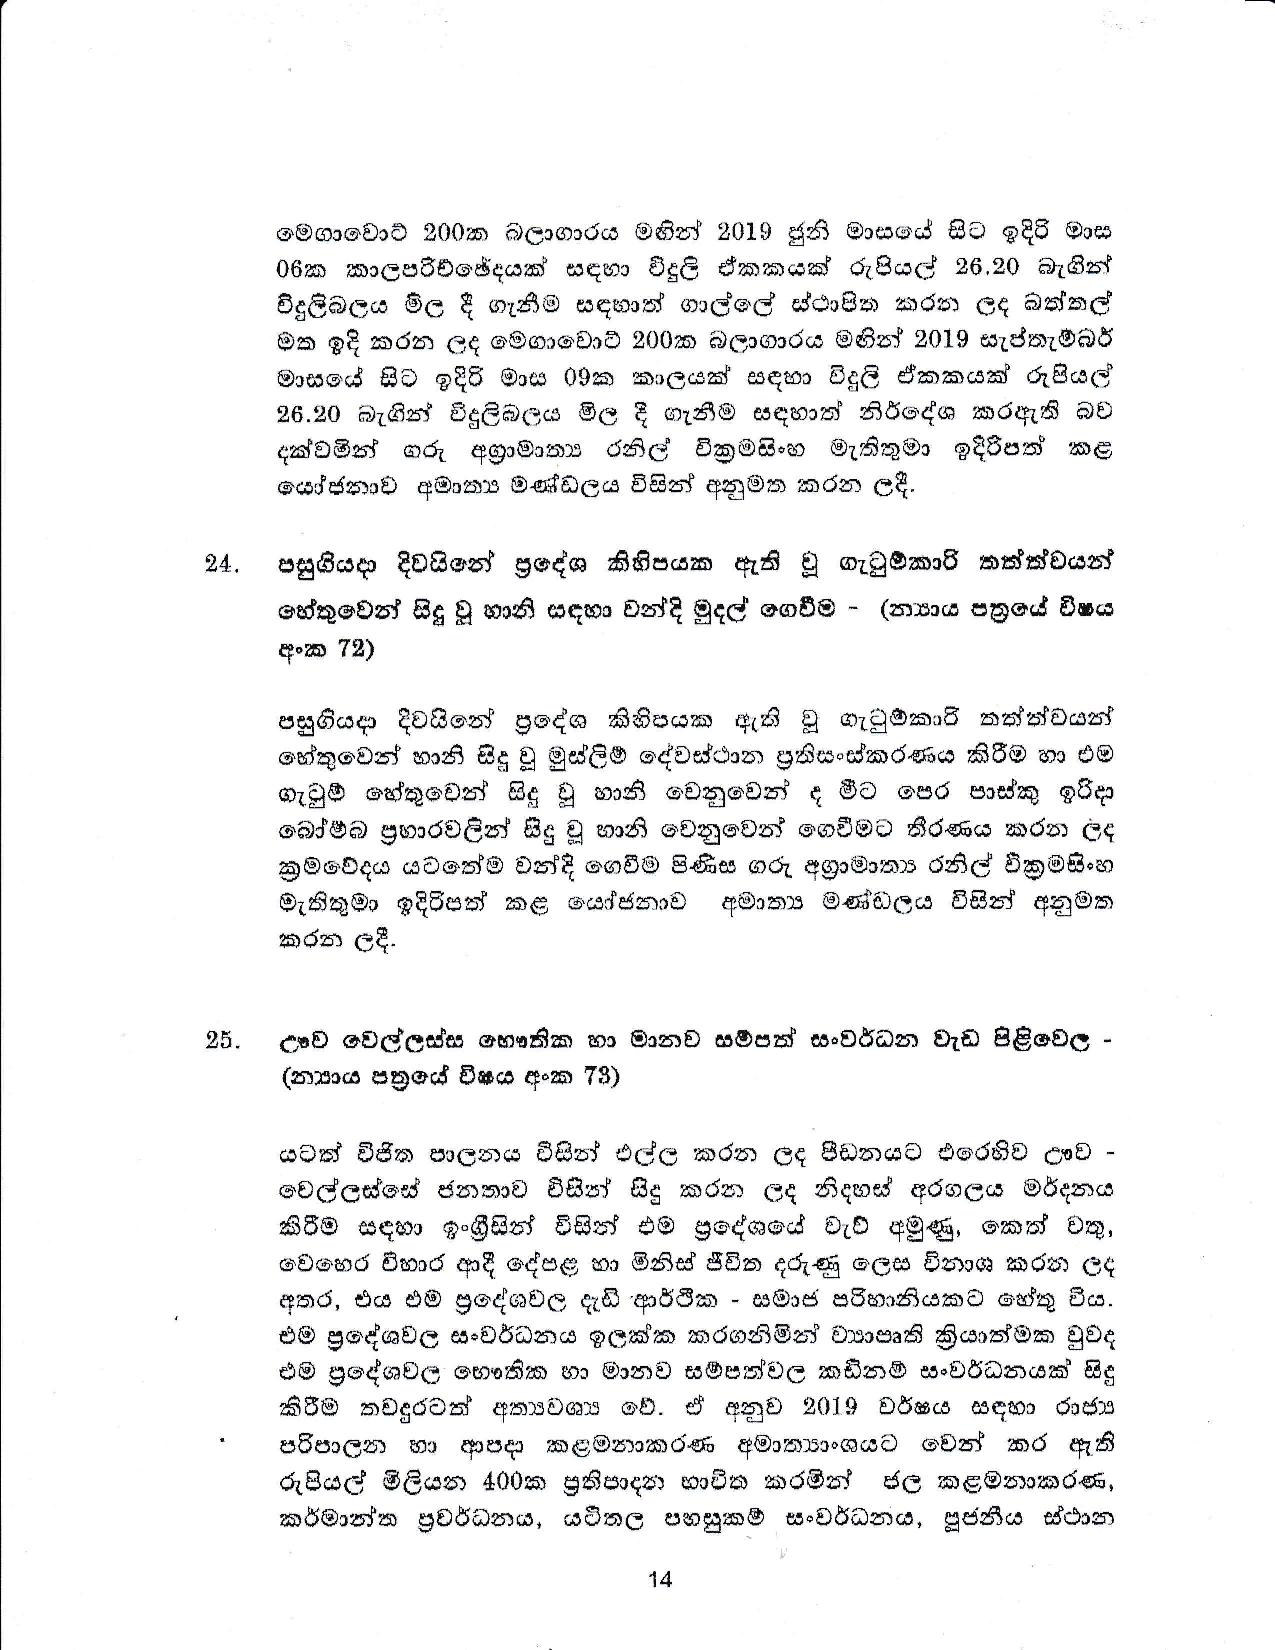 Cabinet Decision on 21.05.2019 page 014